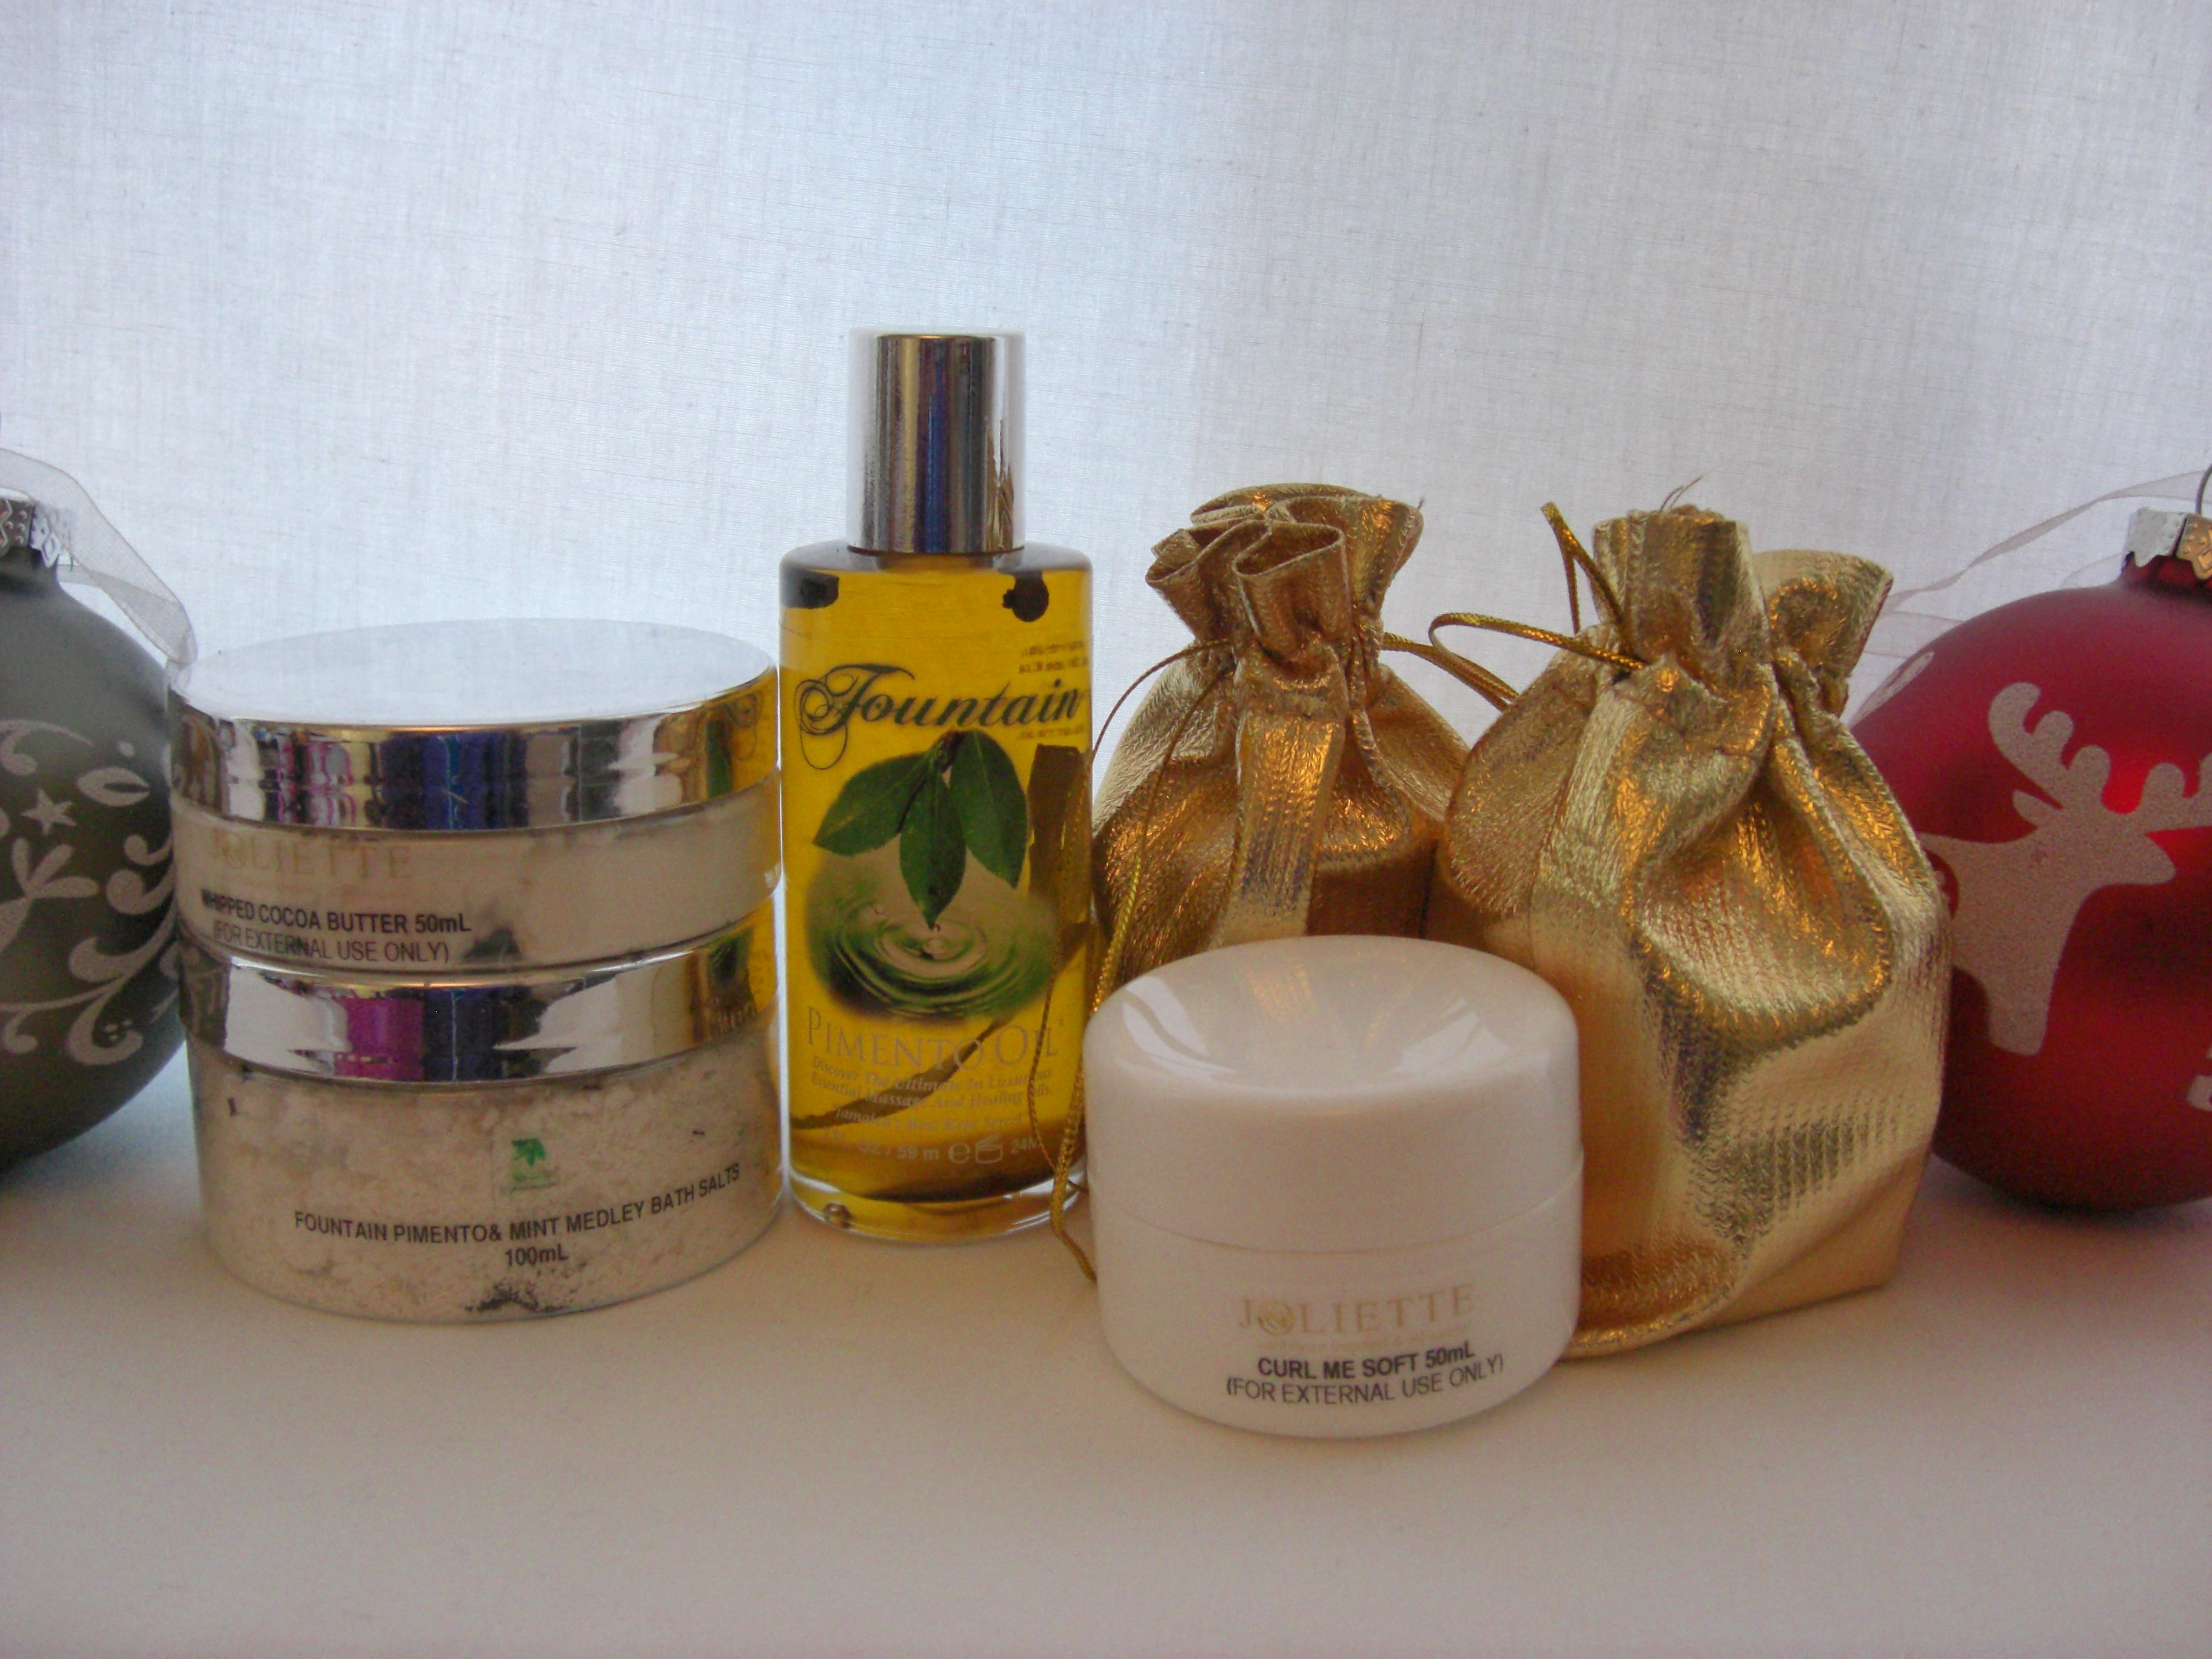 christmas products at afrodeity http://store.afrodeity.co.uk